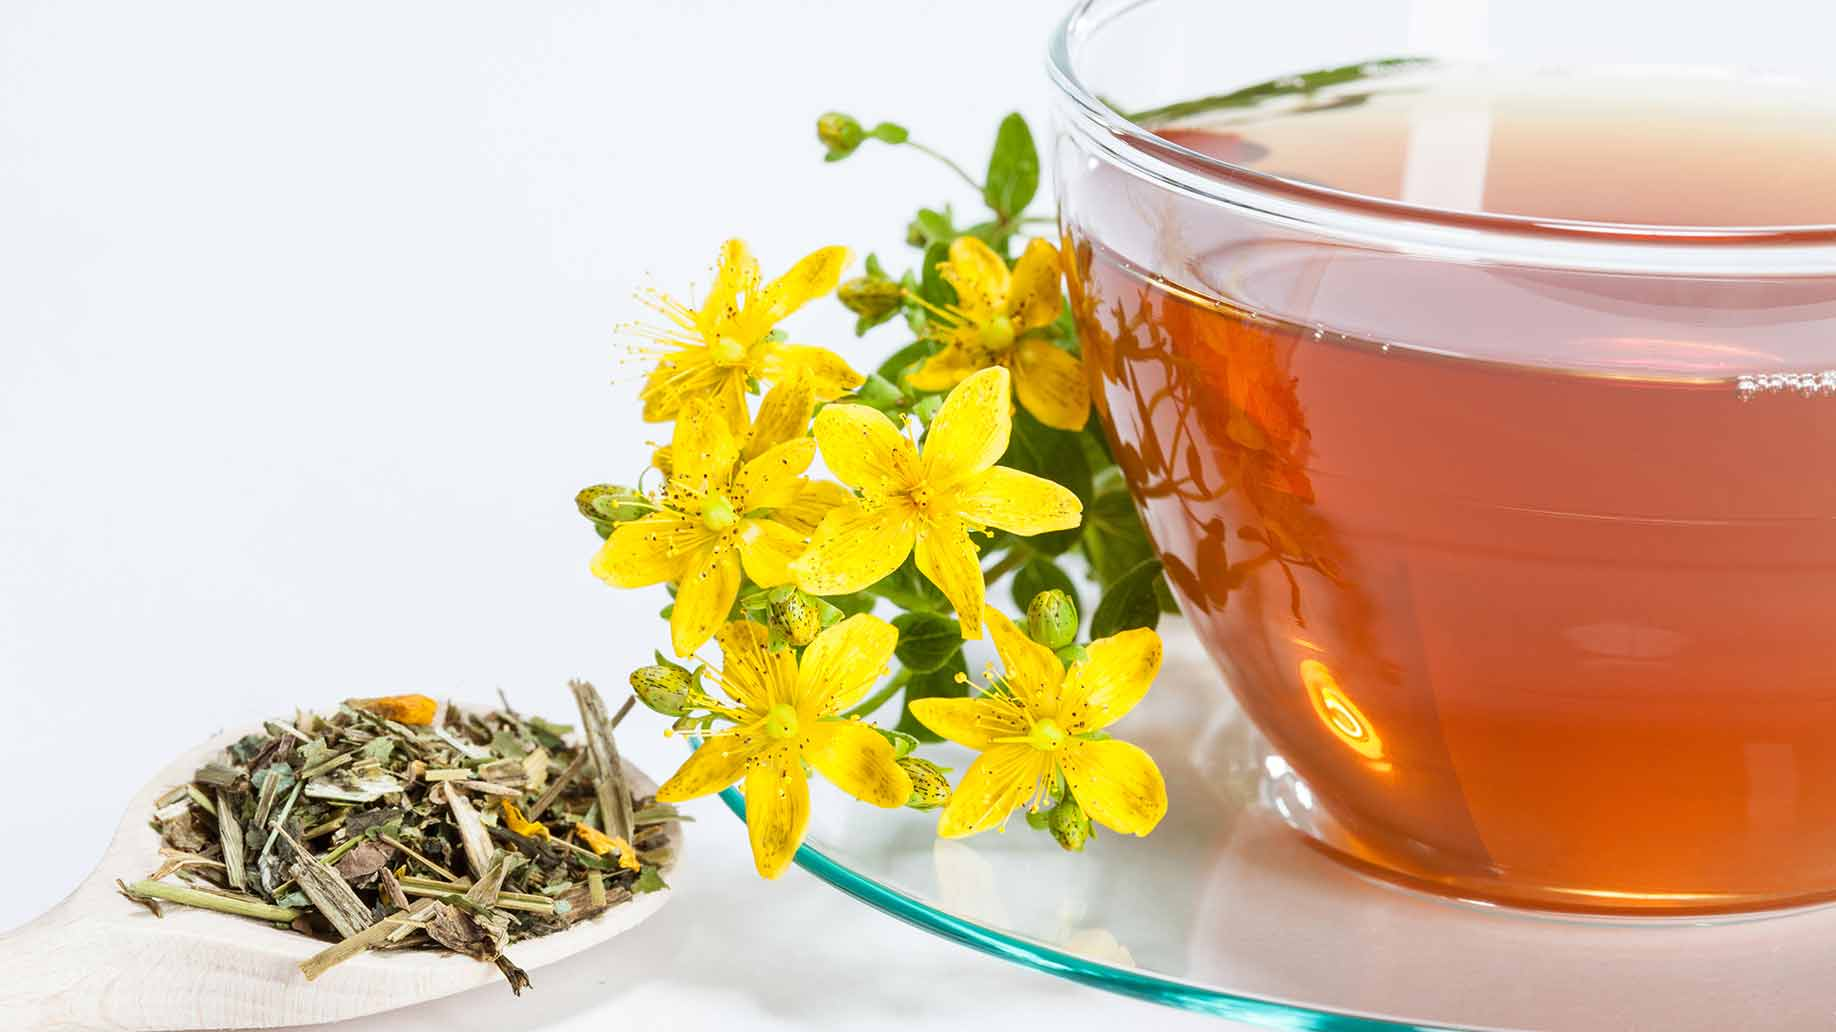 premenstrual syndrome pms symptoms st johns wort flowers tea depression